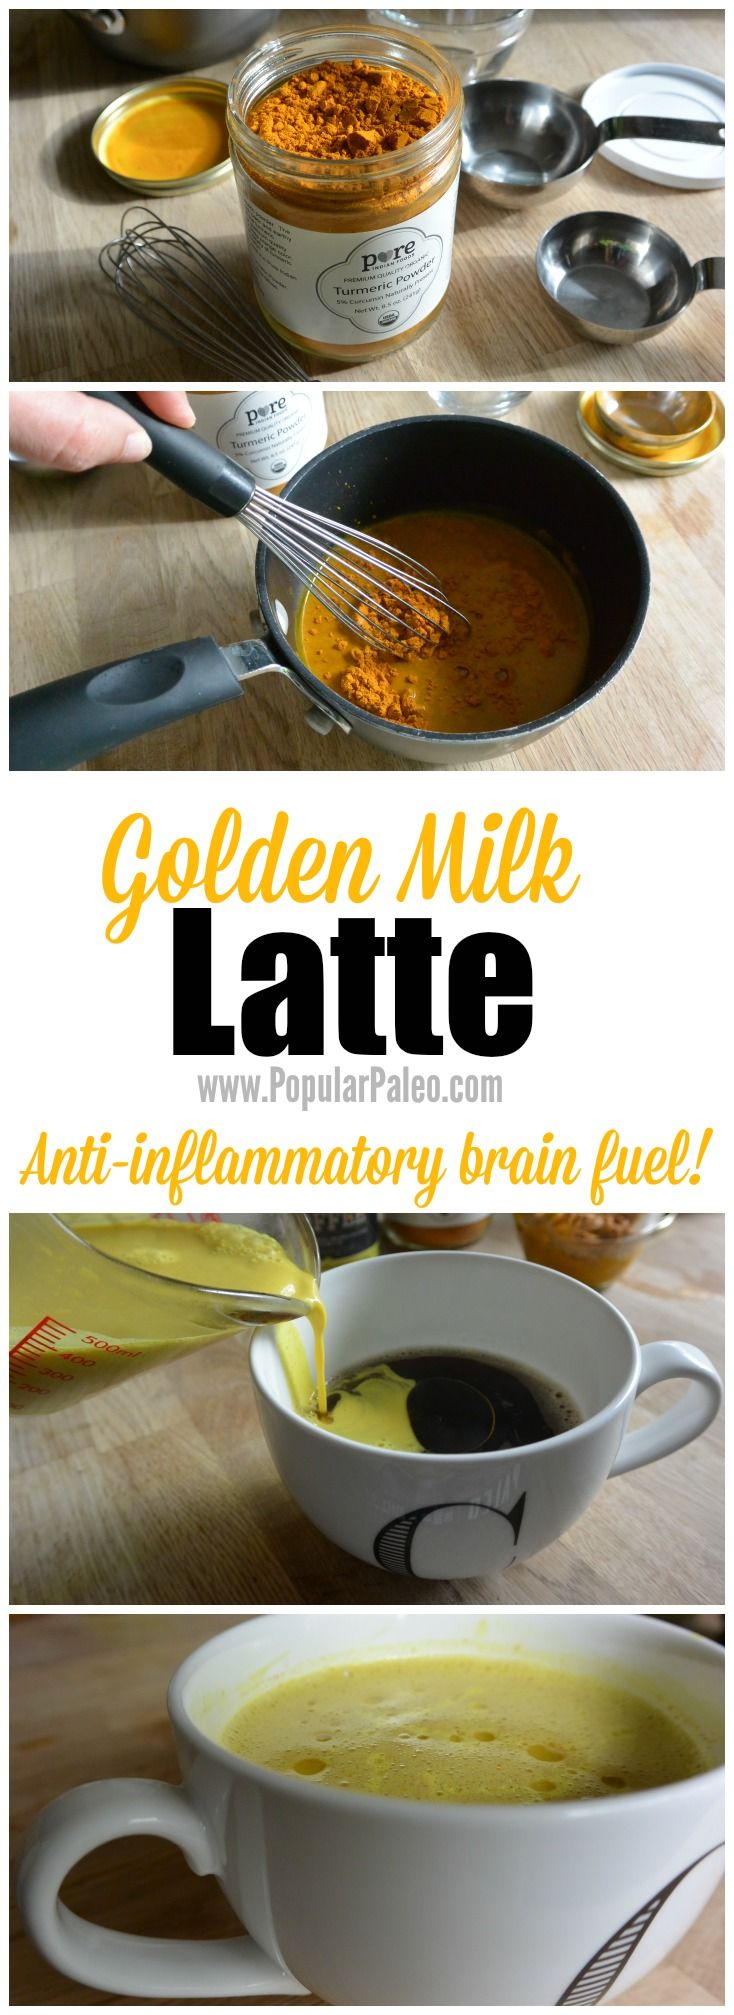 Golden Milk Latte on www.PopularPaleo.com   Turn the traditional anti-inflammatory, antioxidant drink into brain fuel to start your day! #paleo #buttercoffee #goldenmilk